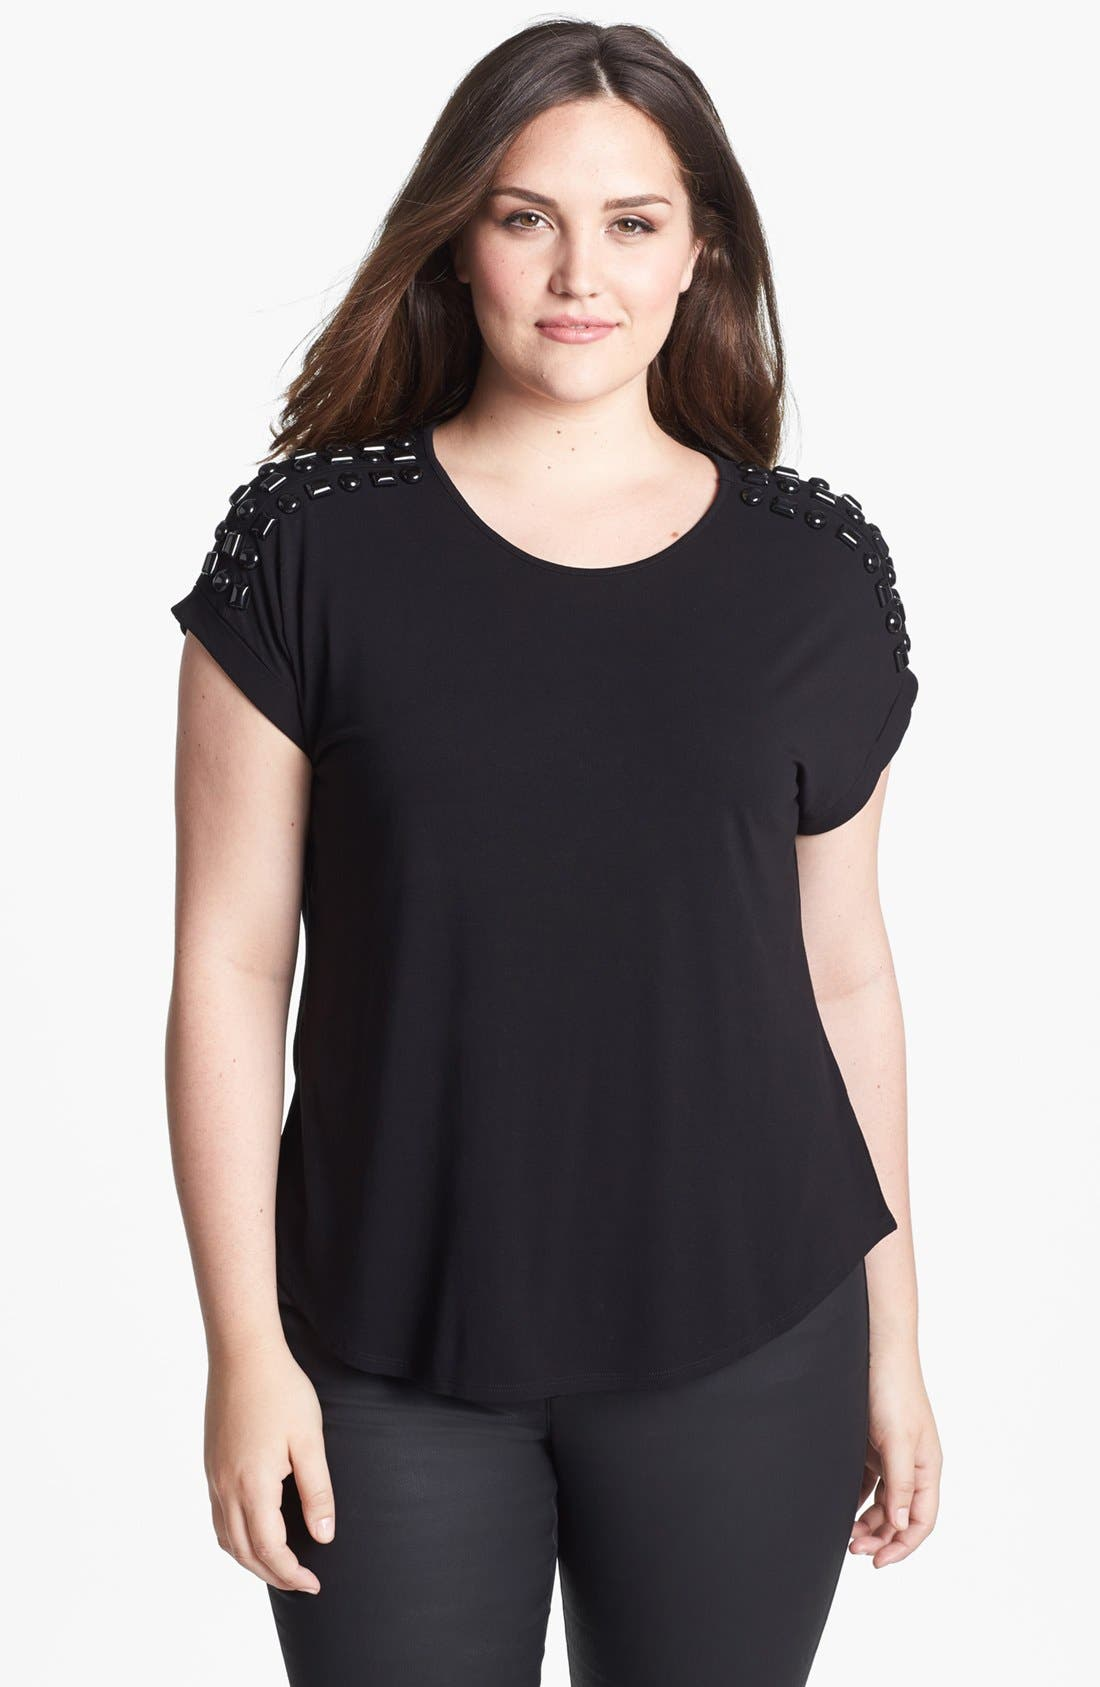 Alternate Image 1 Selected - Vince Camuto Embellished Top (Plus Size)